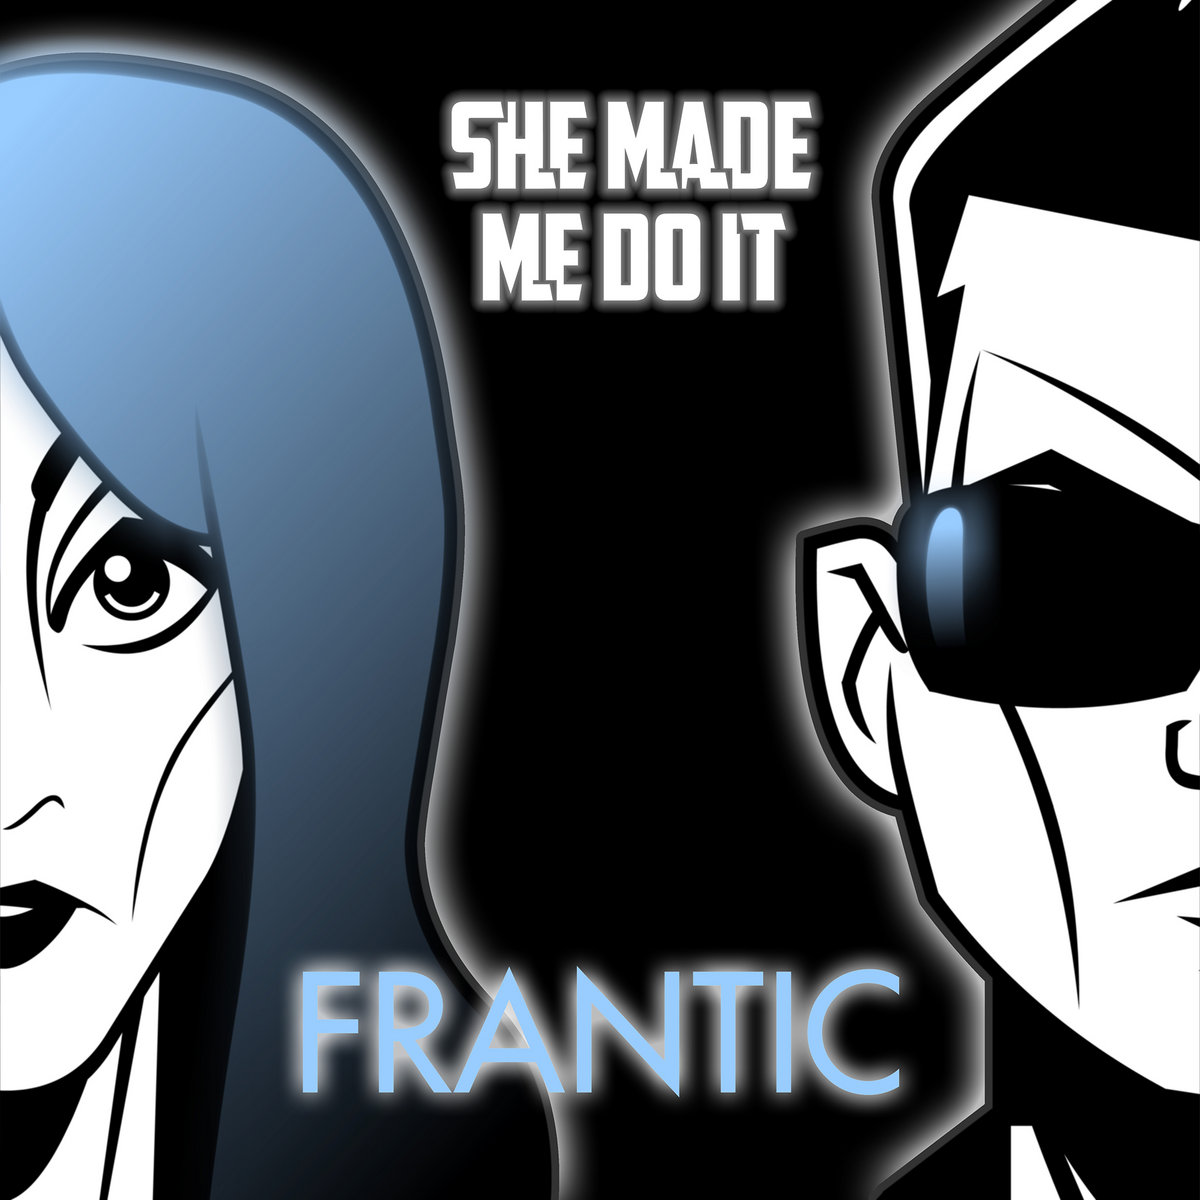 Frantic by She Made Me Do It